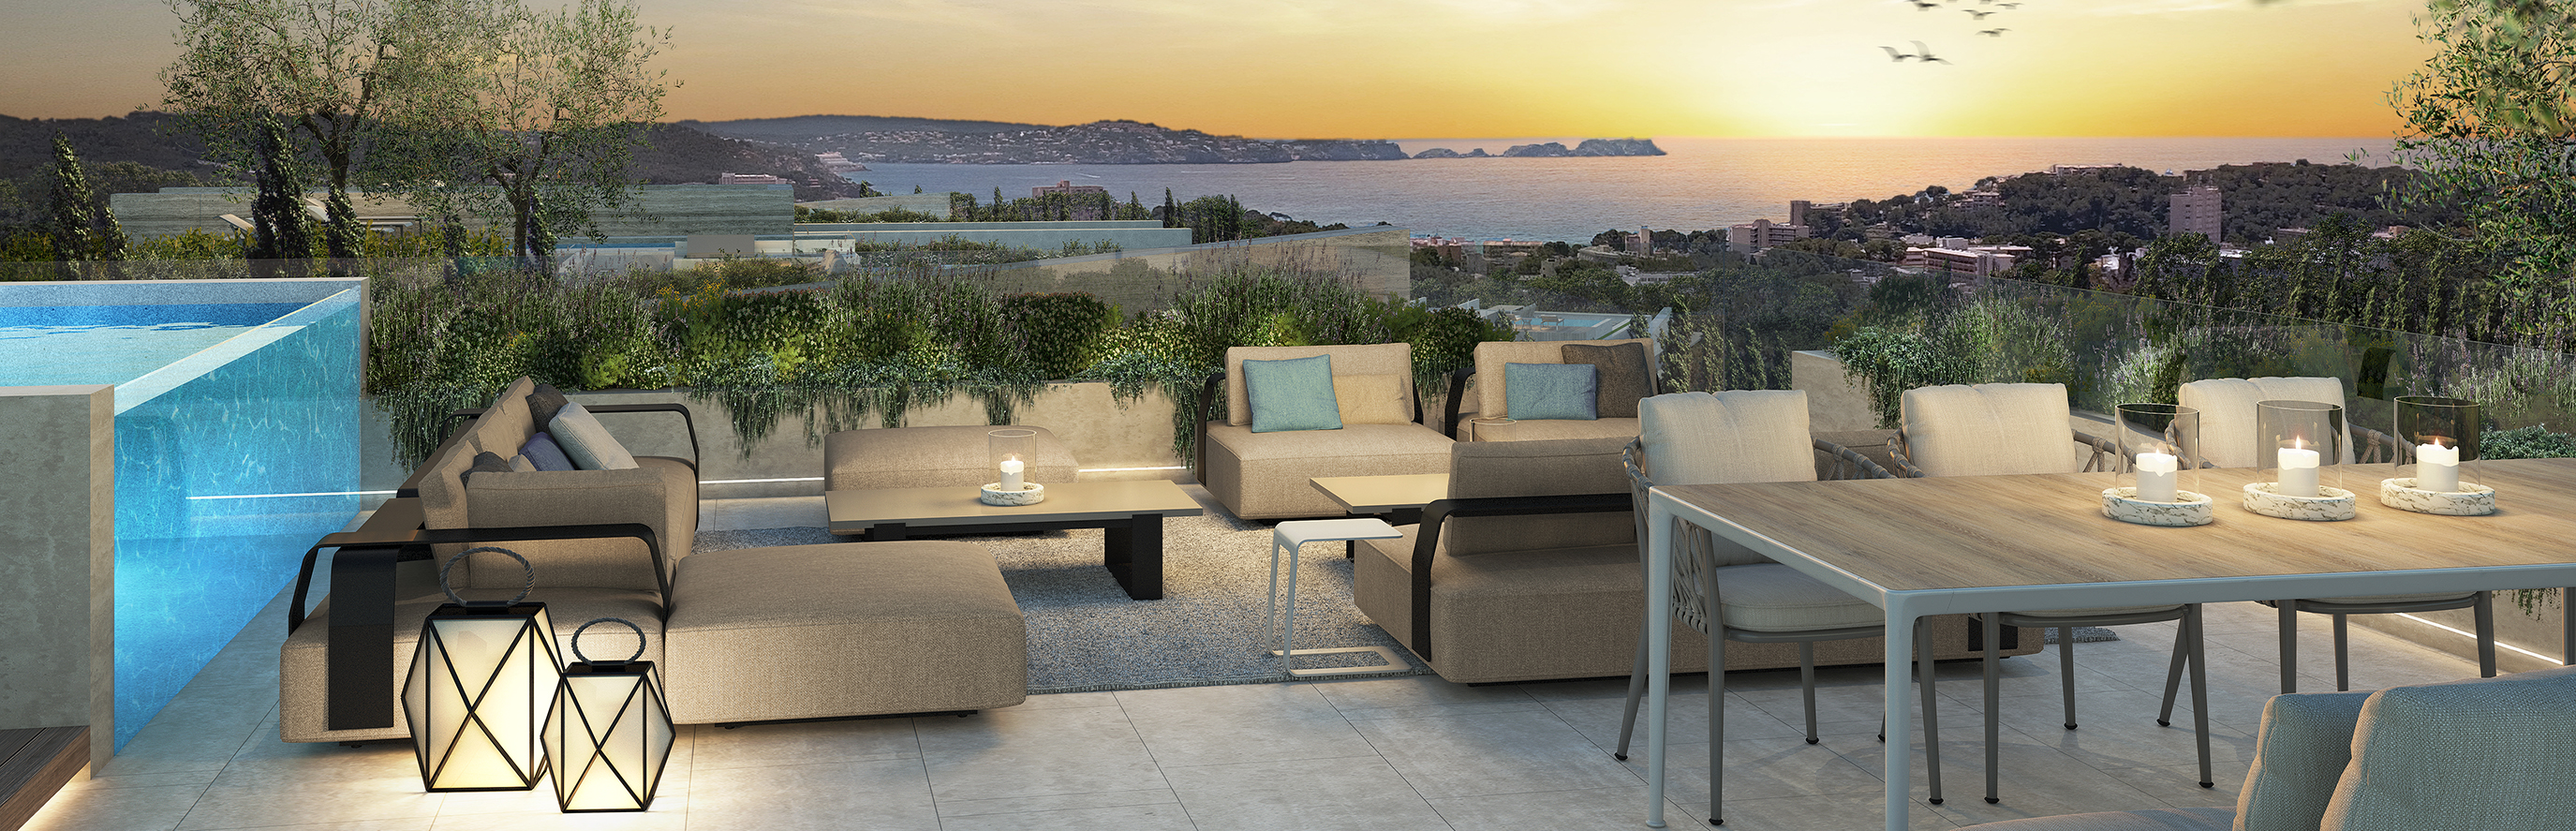 Puerto Andratx - Chill-Out roof terrace with sunset views